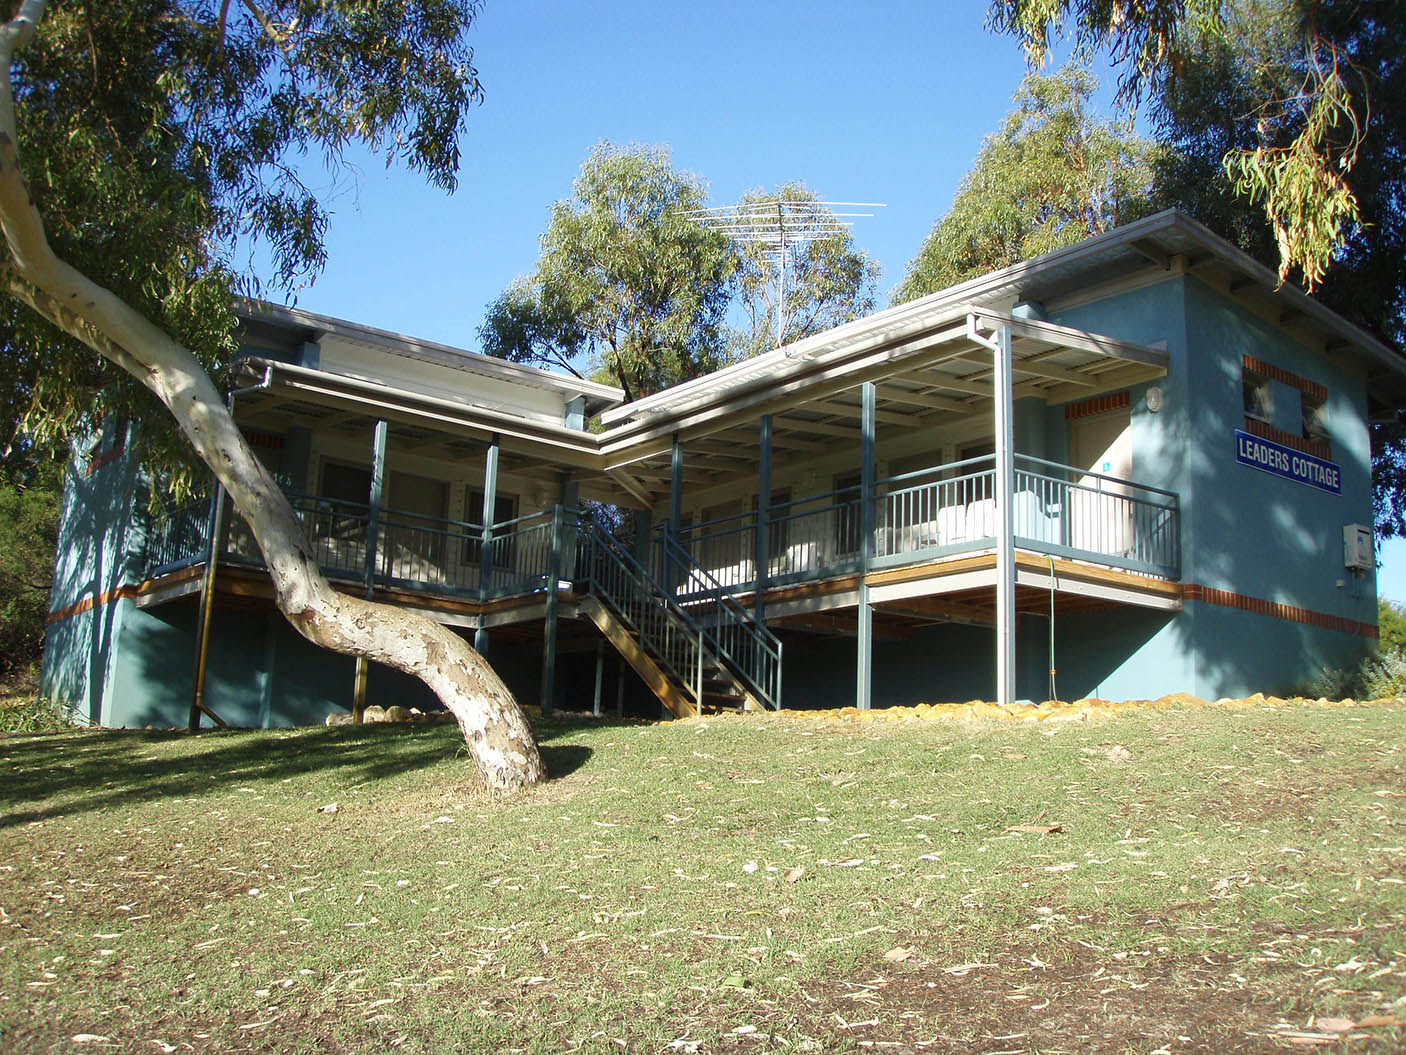 Commodore Leaders Cottage